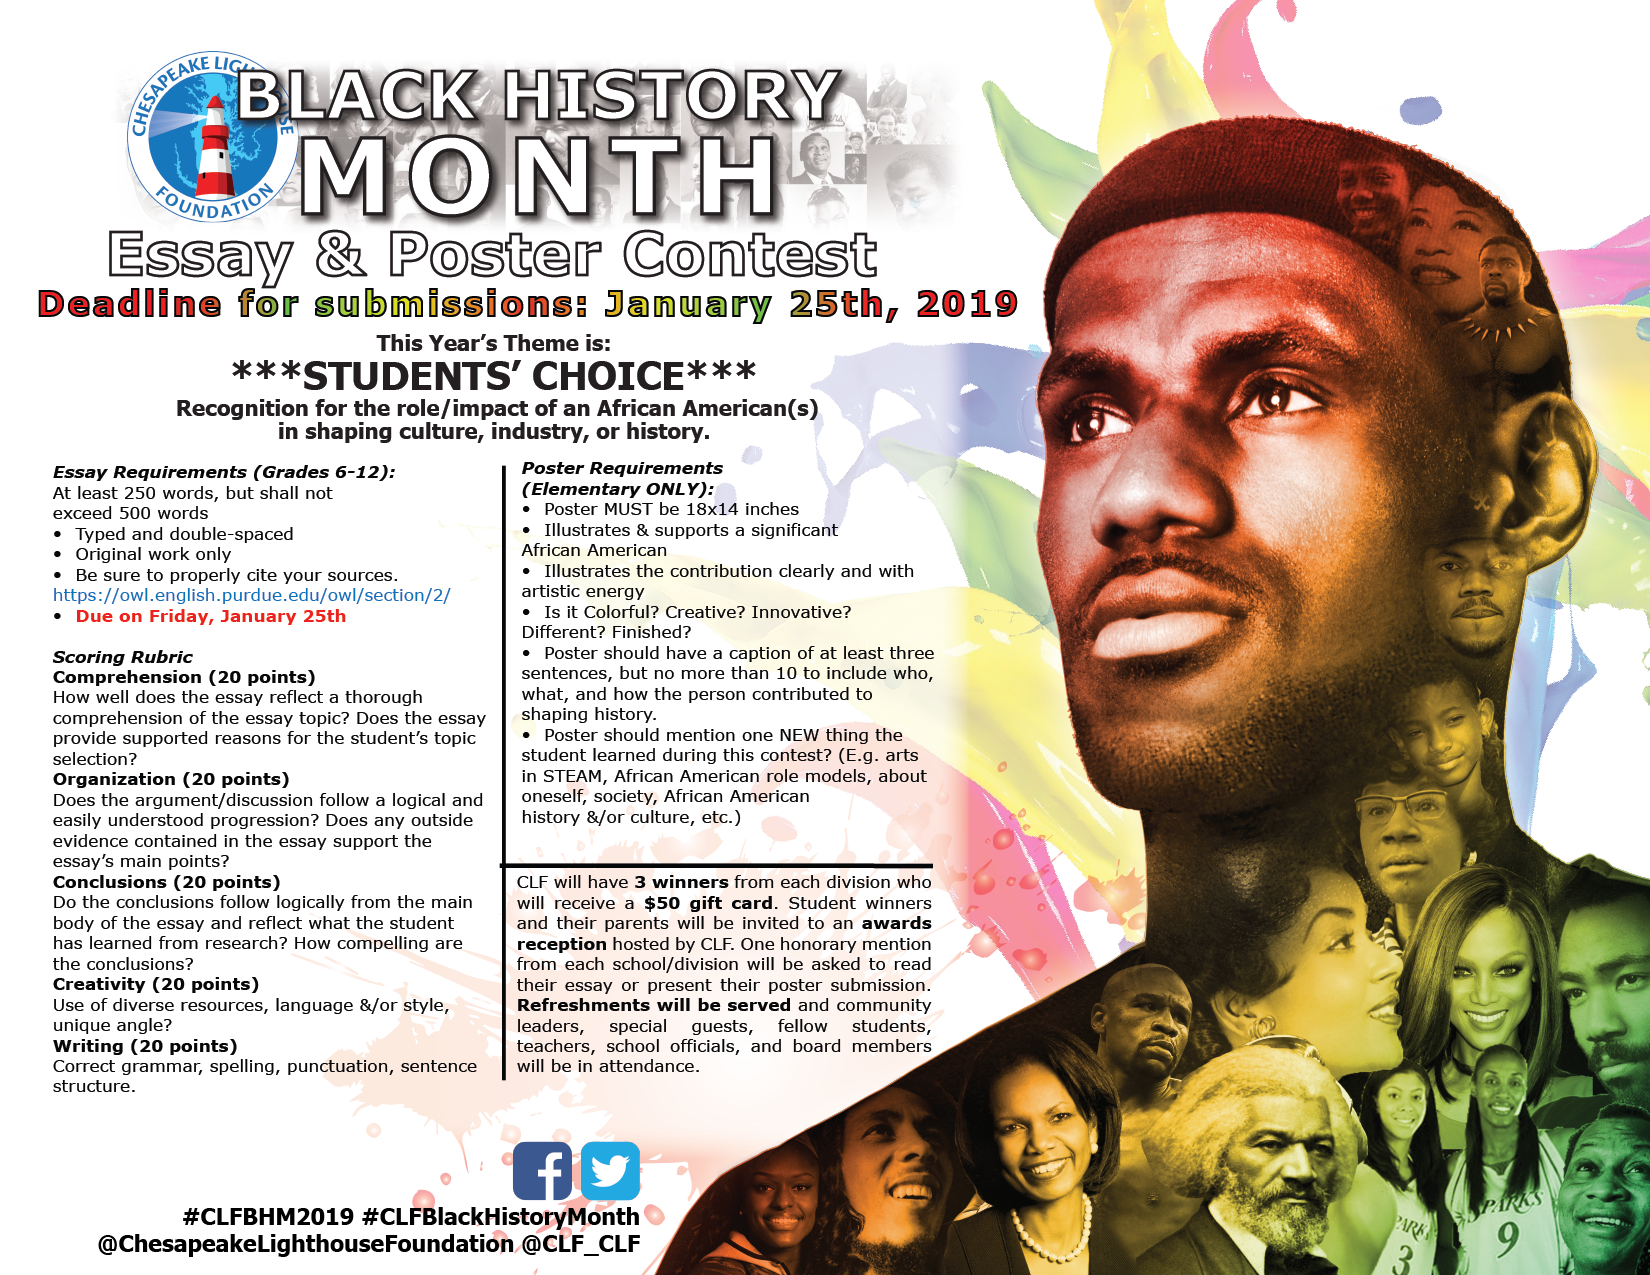 black history month topics to discuss